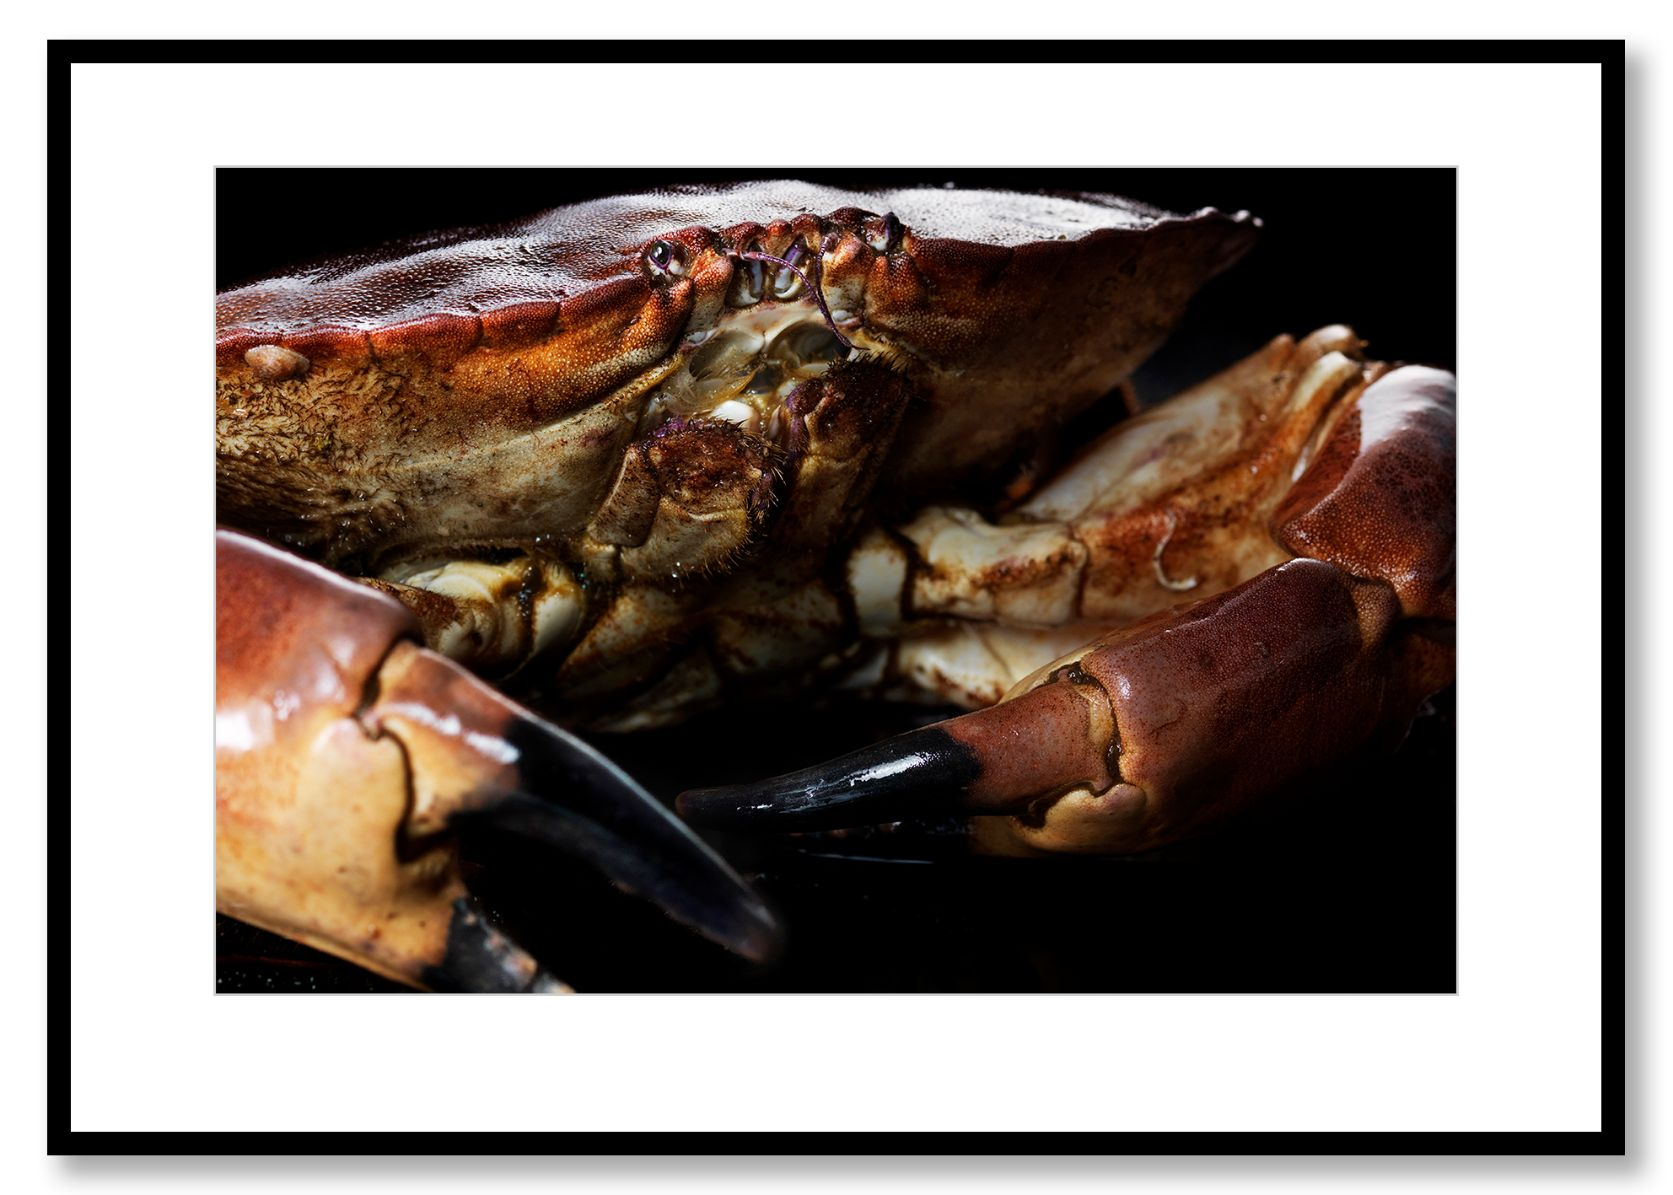 Crab. Food Art. Prints for sale. Photo by Fredrik Rege